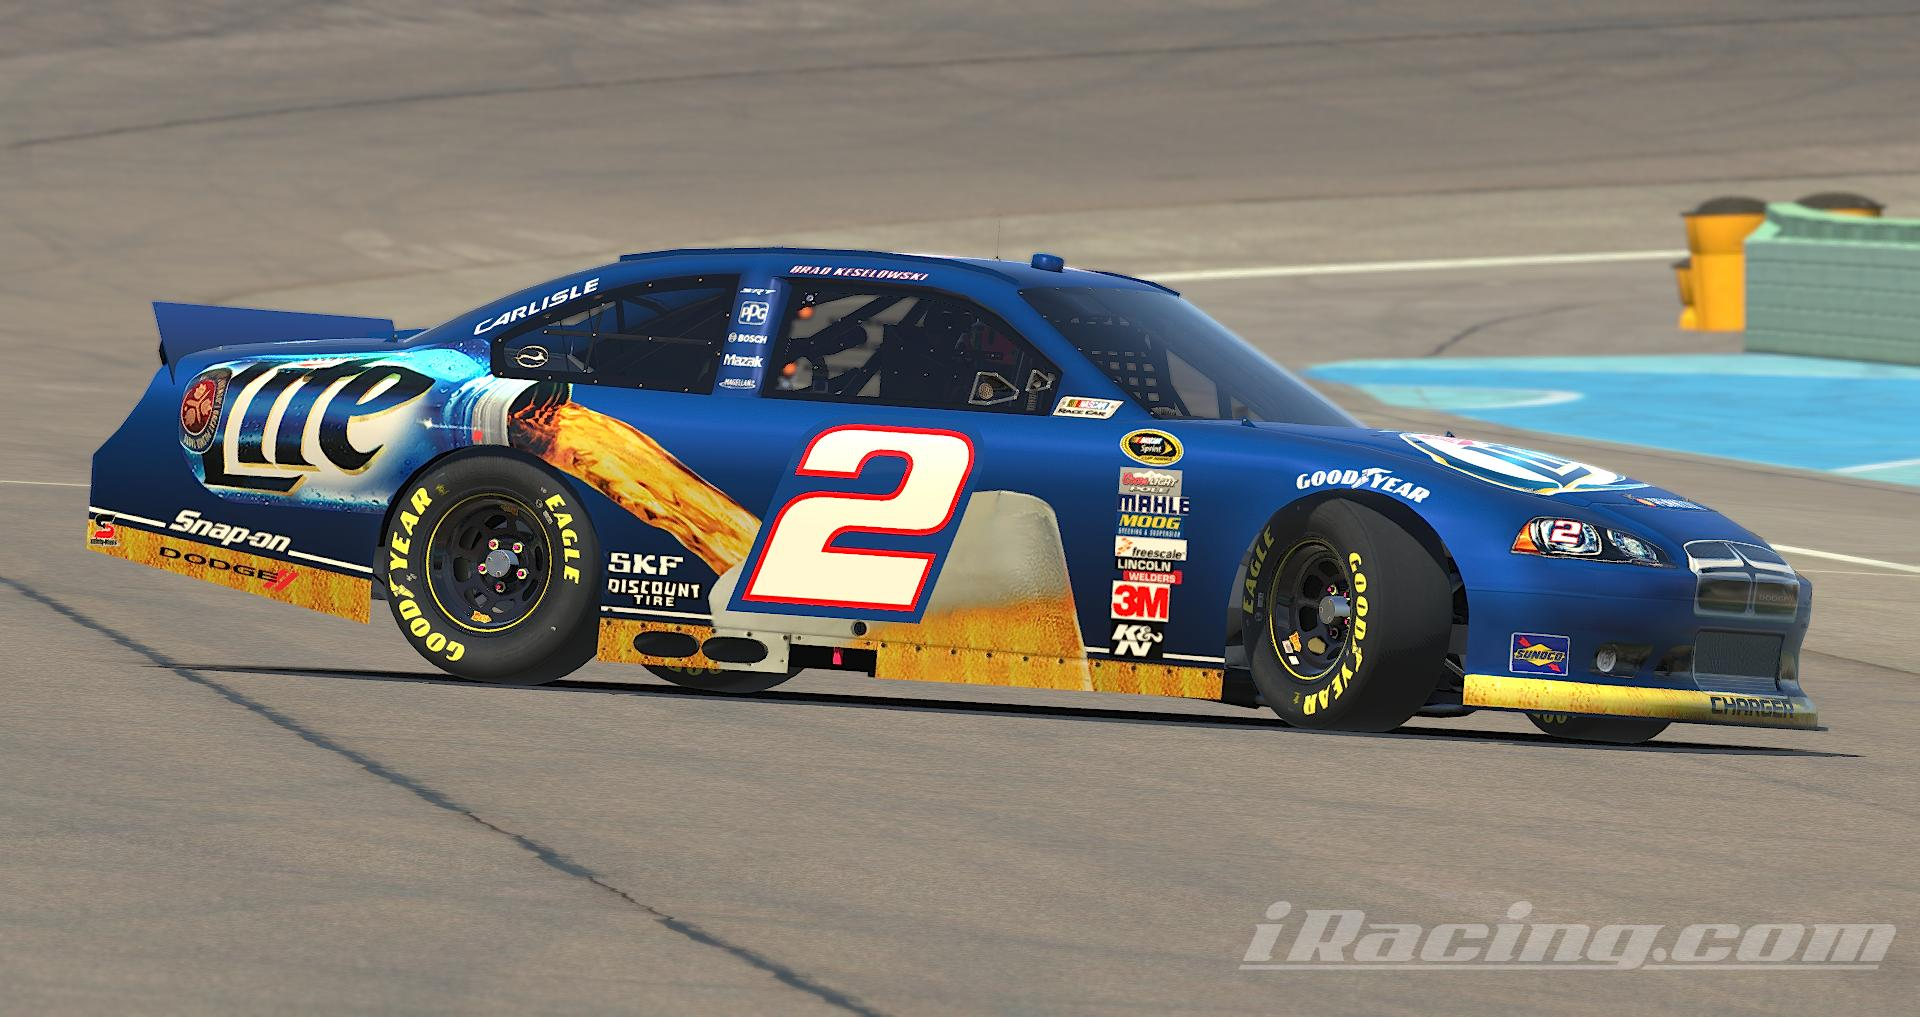 Preview of Brad Keselowski Miller Lite 2012 Dodge Charger by Nicholas Doucette